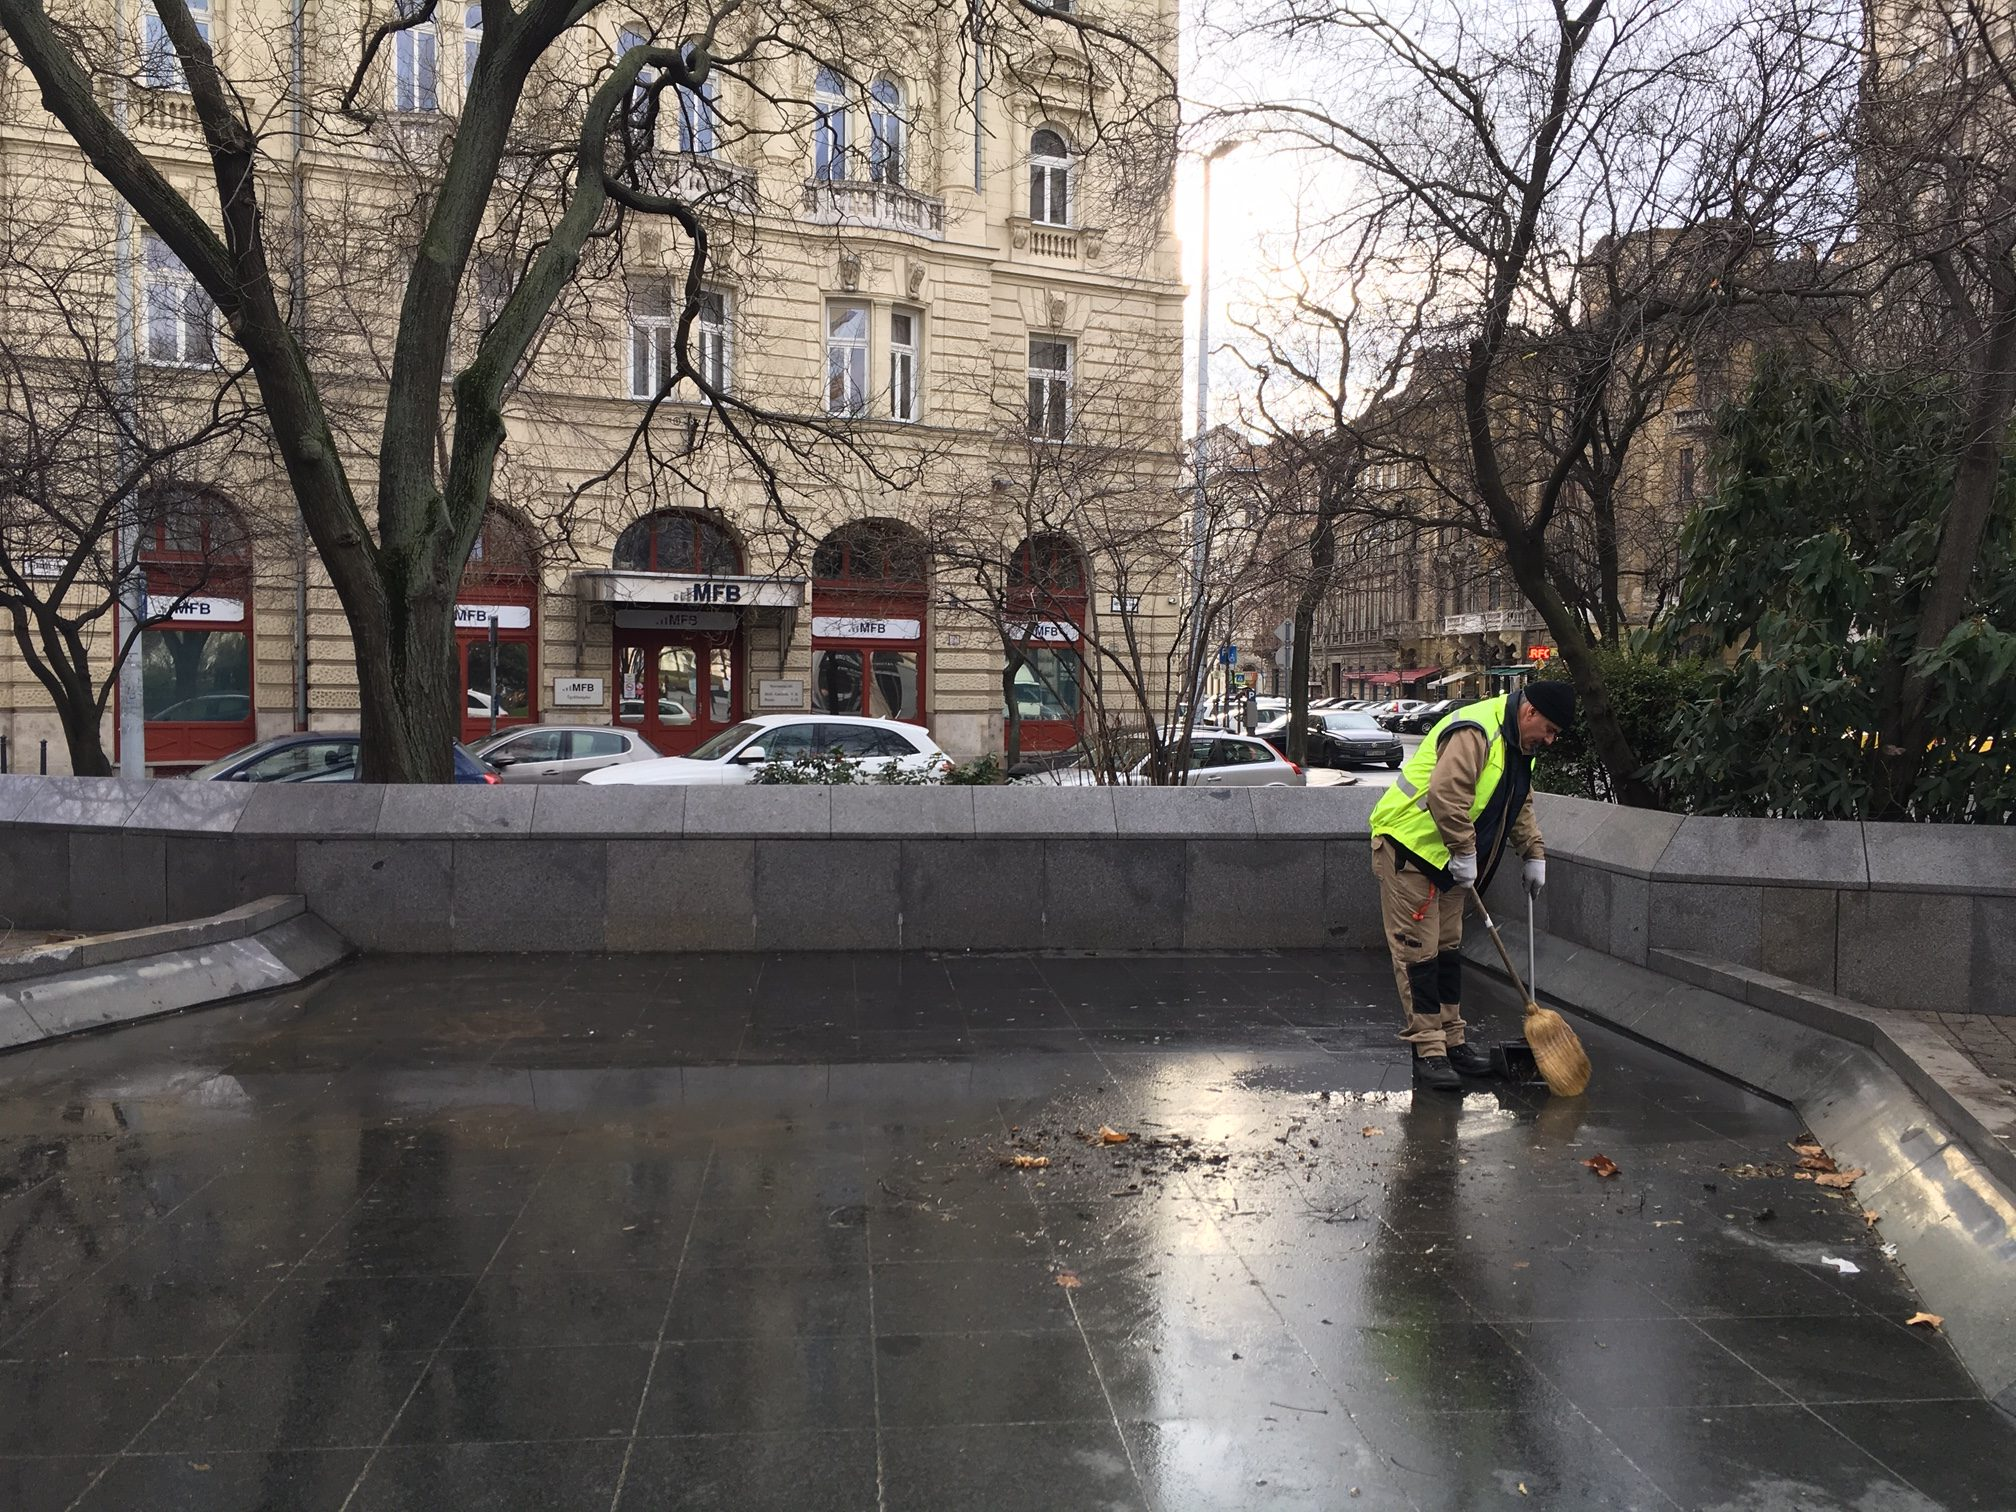 Martyrs' Square after the removal the statue of Imre Nagy. Source: Hungarian Free Press